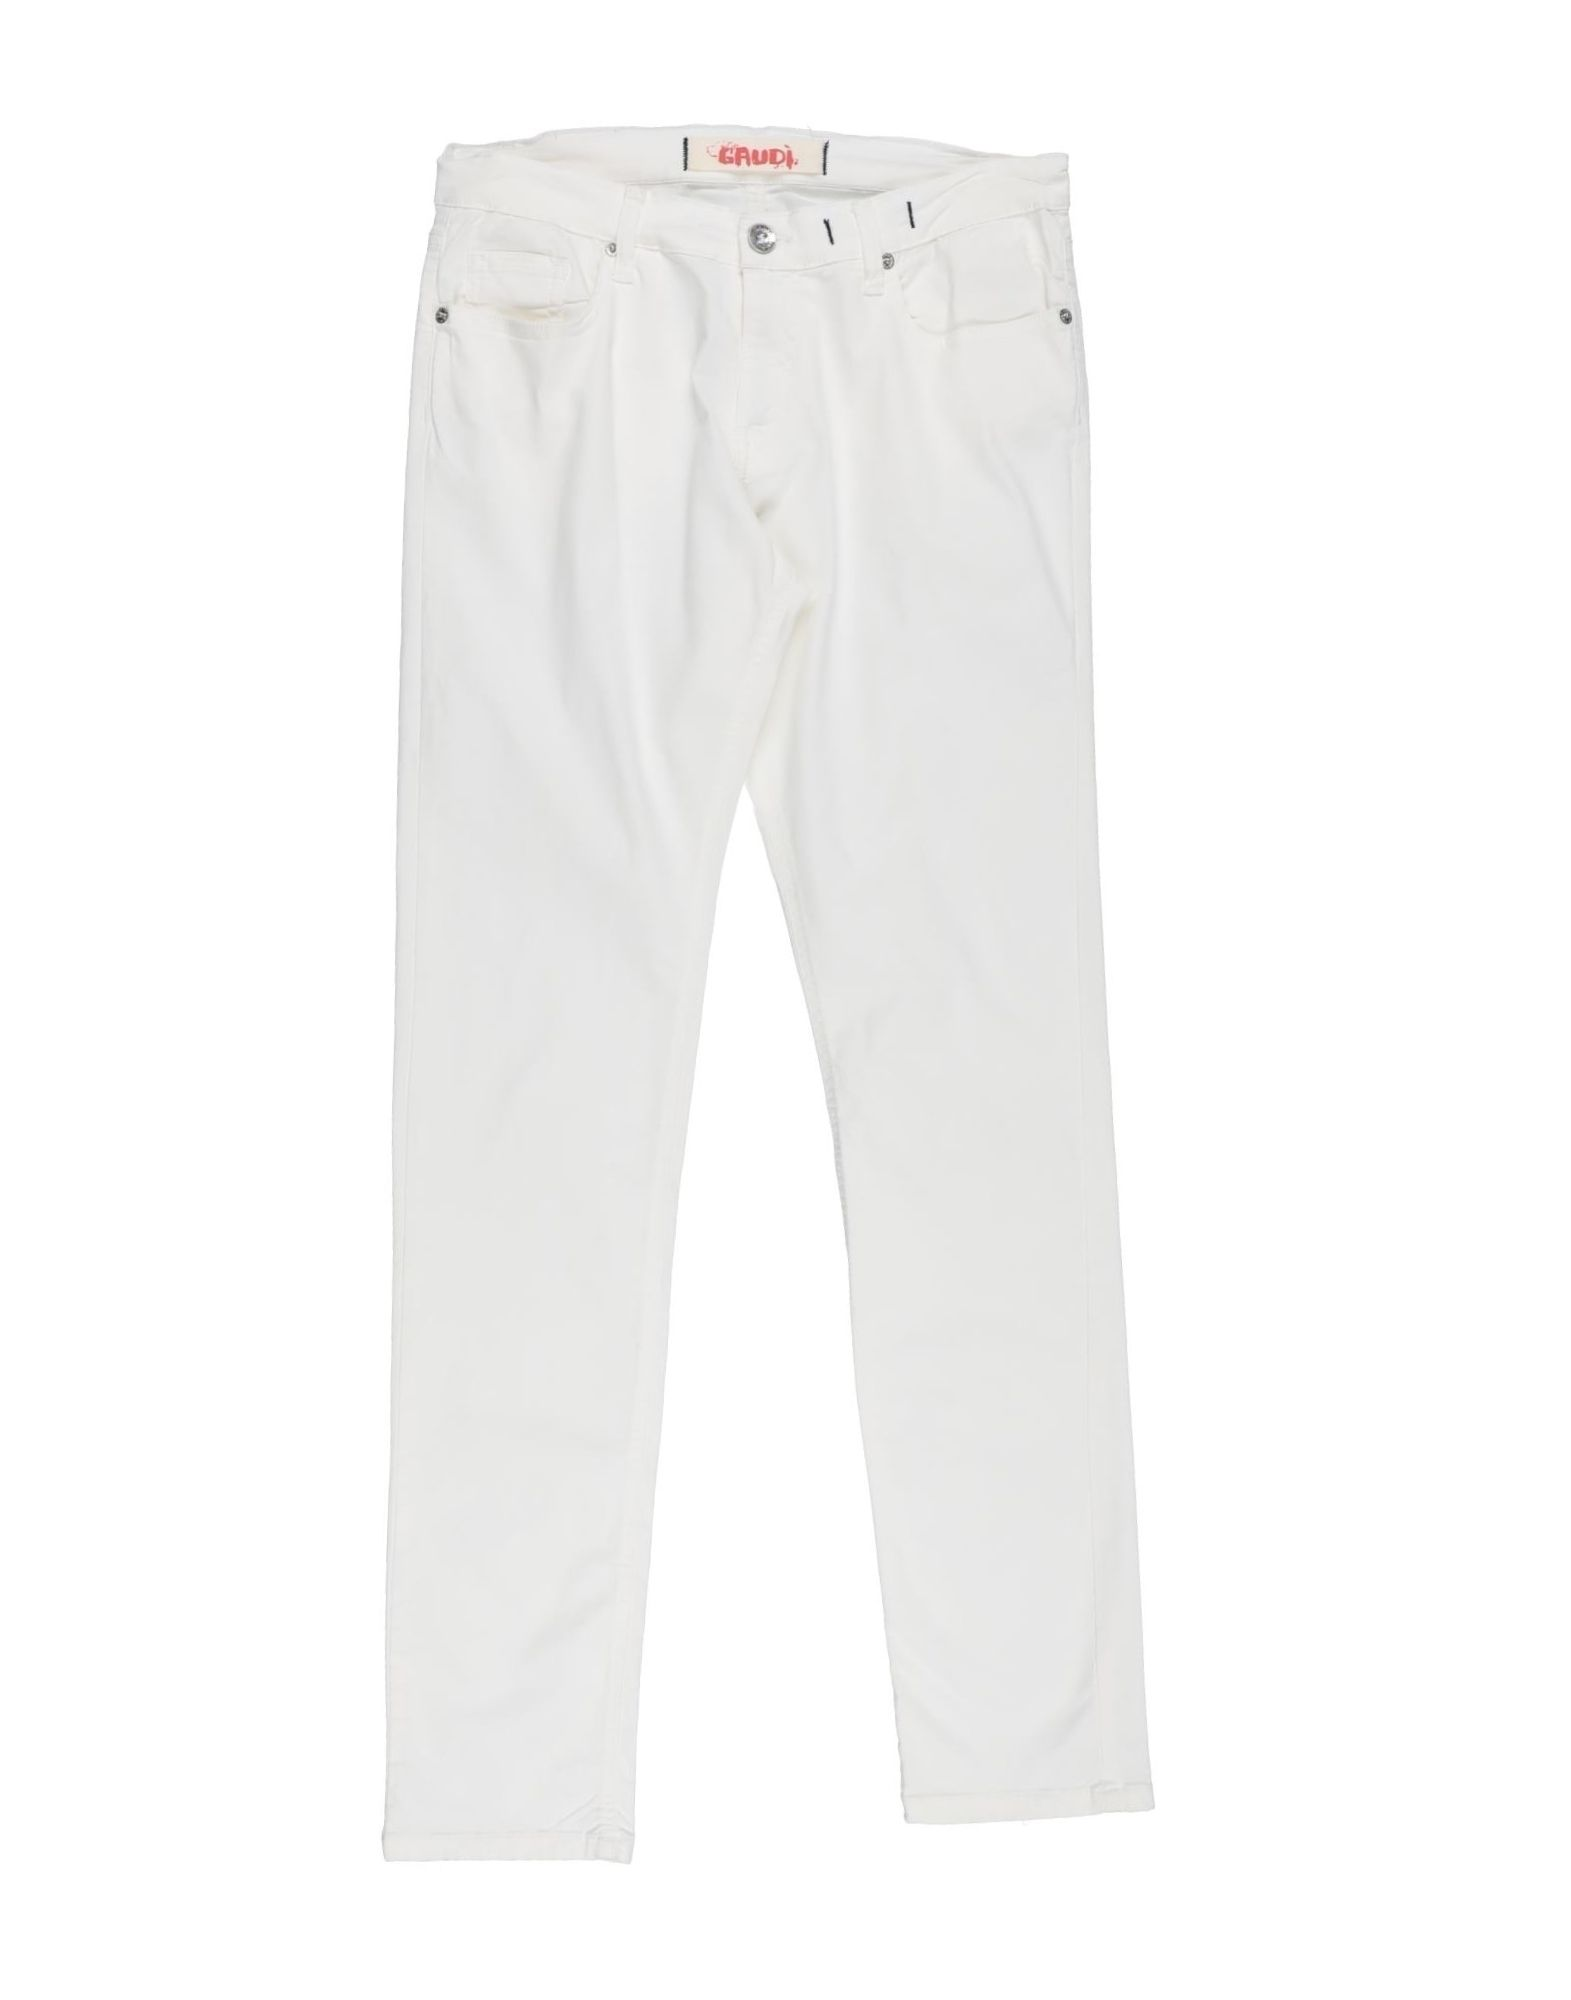 Gaudì Kids' Casual Pants In White